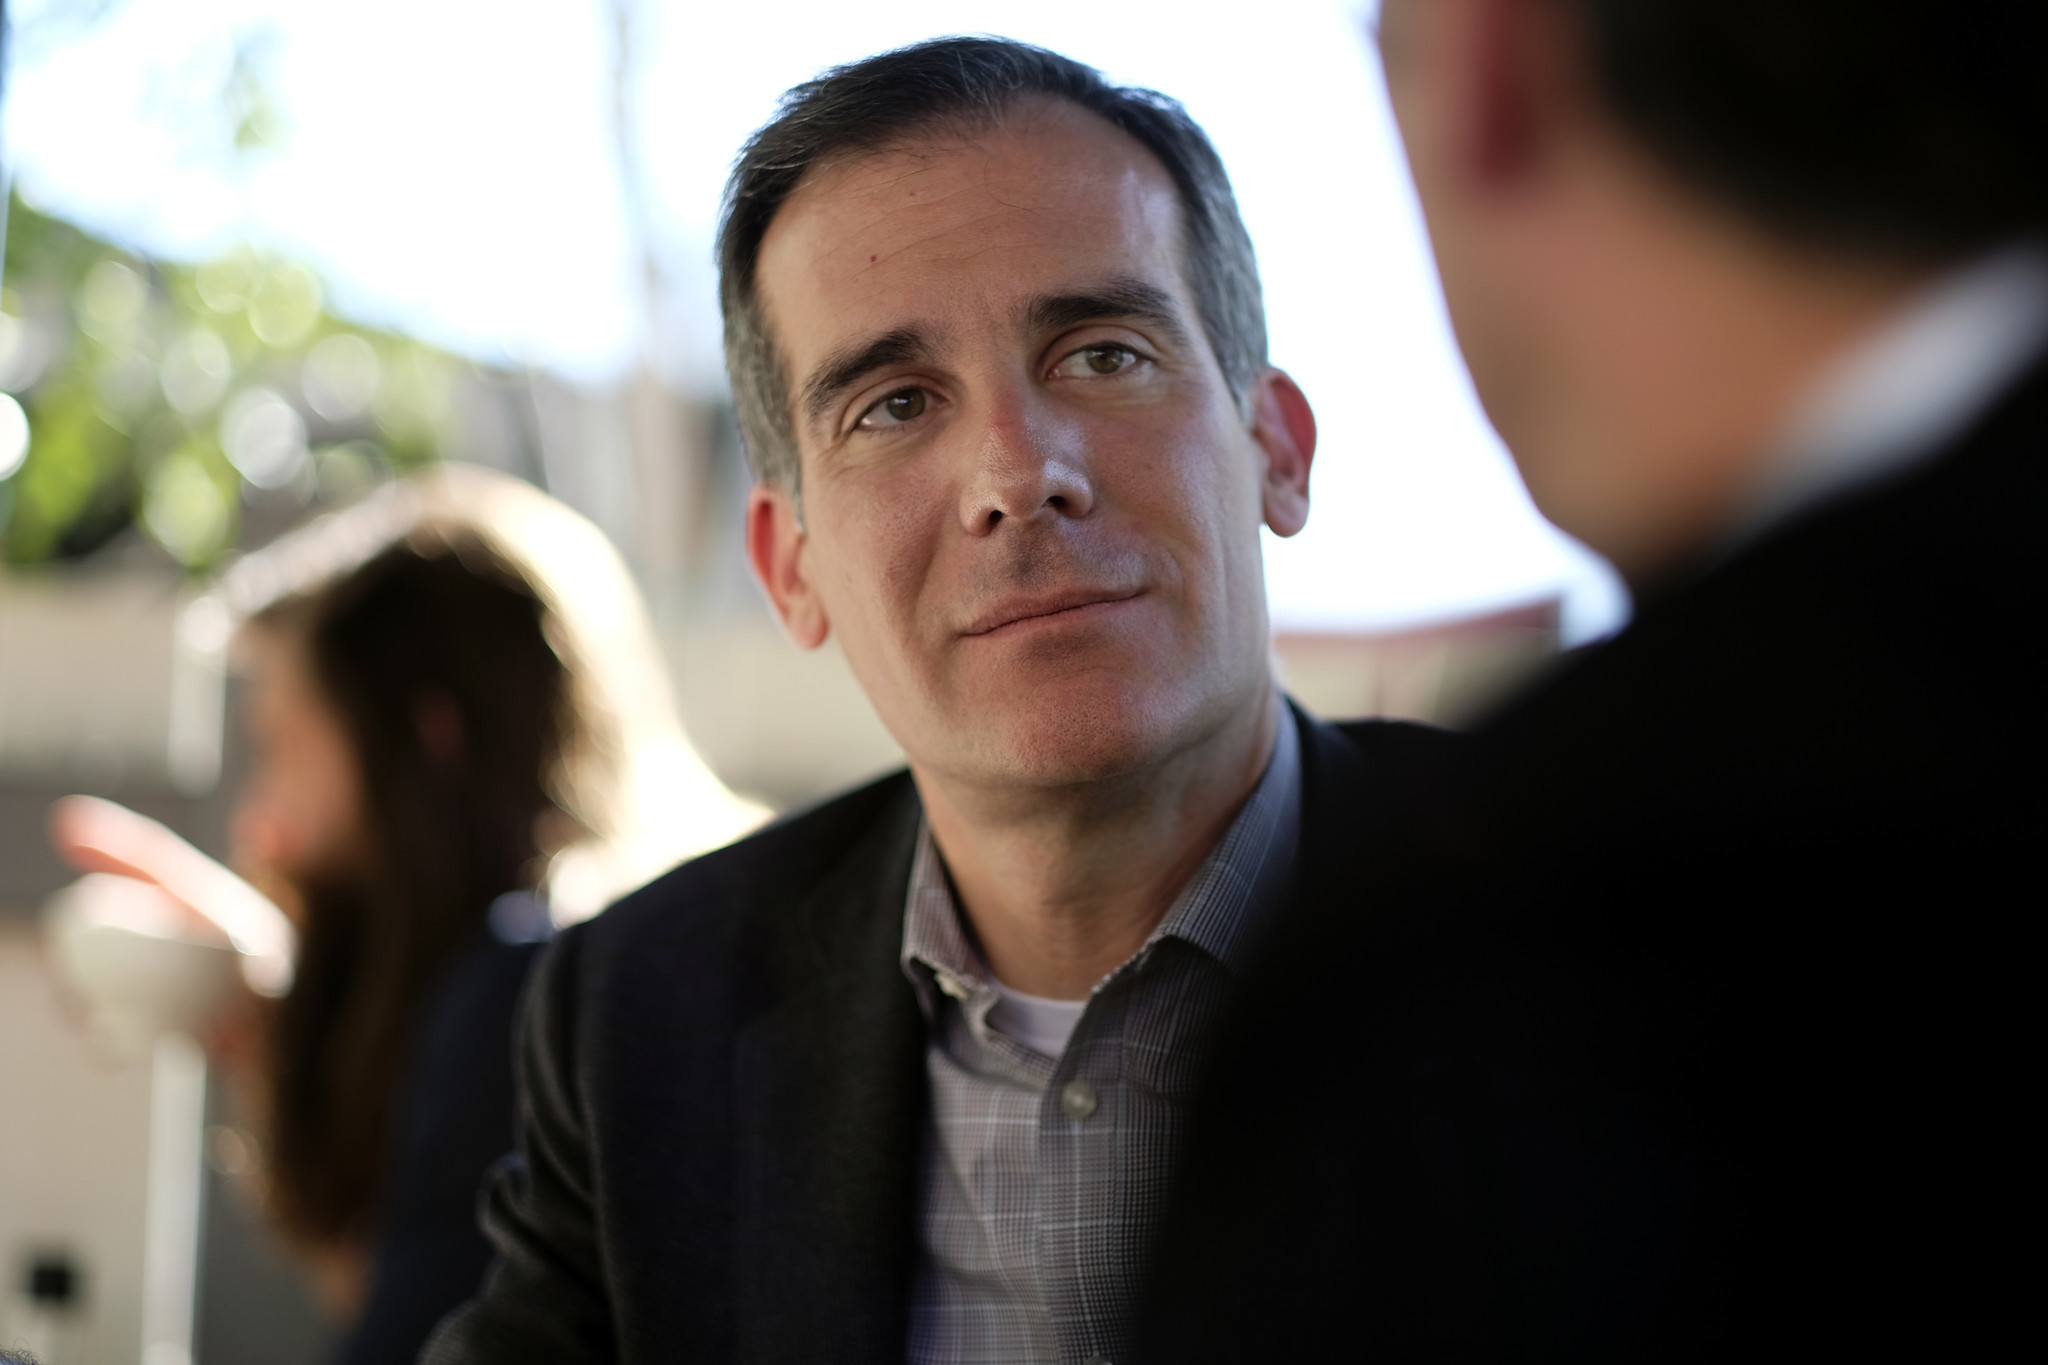 LA Mayor Eric Garcetti expands protection for immigrants